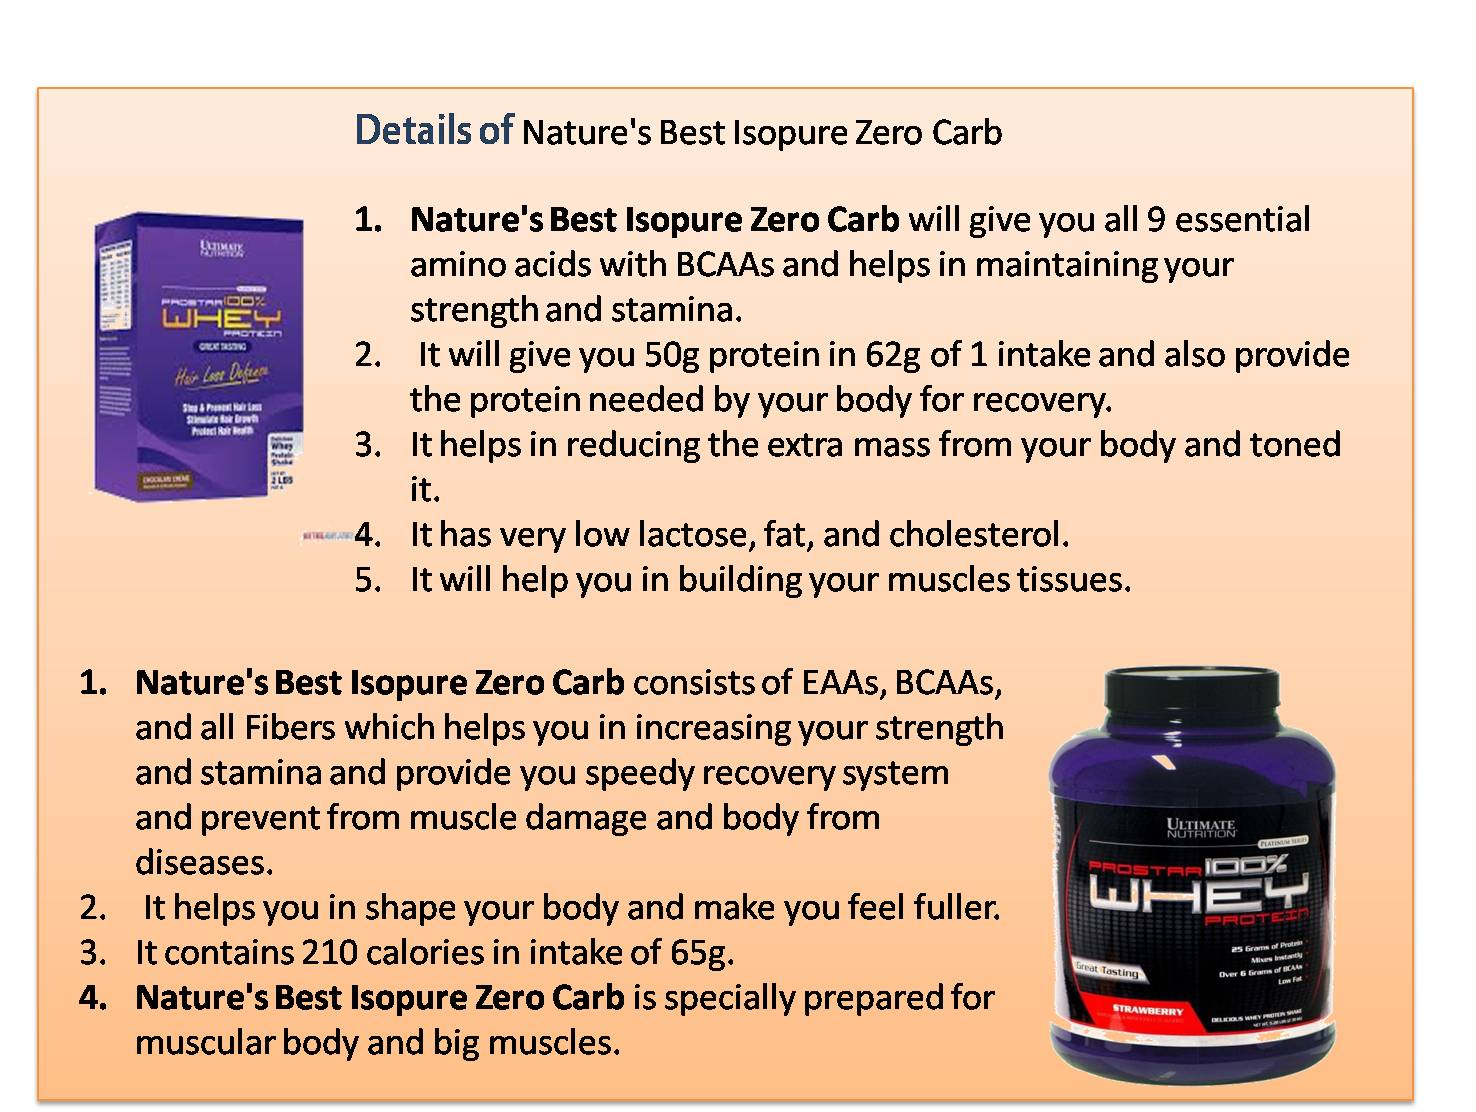 Nature's Best Isopure Zero Carb